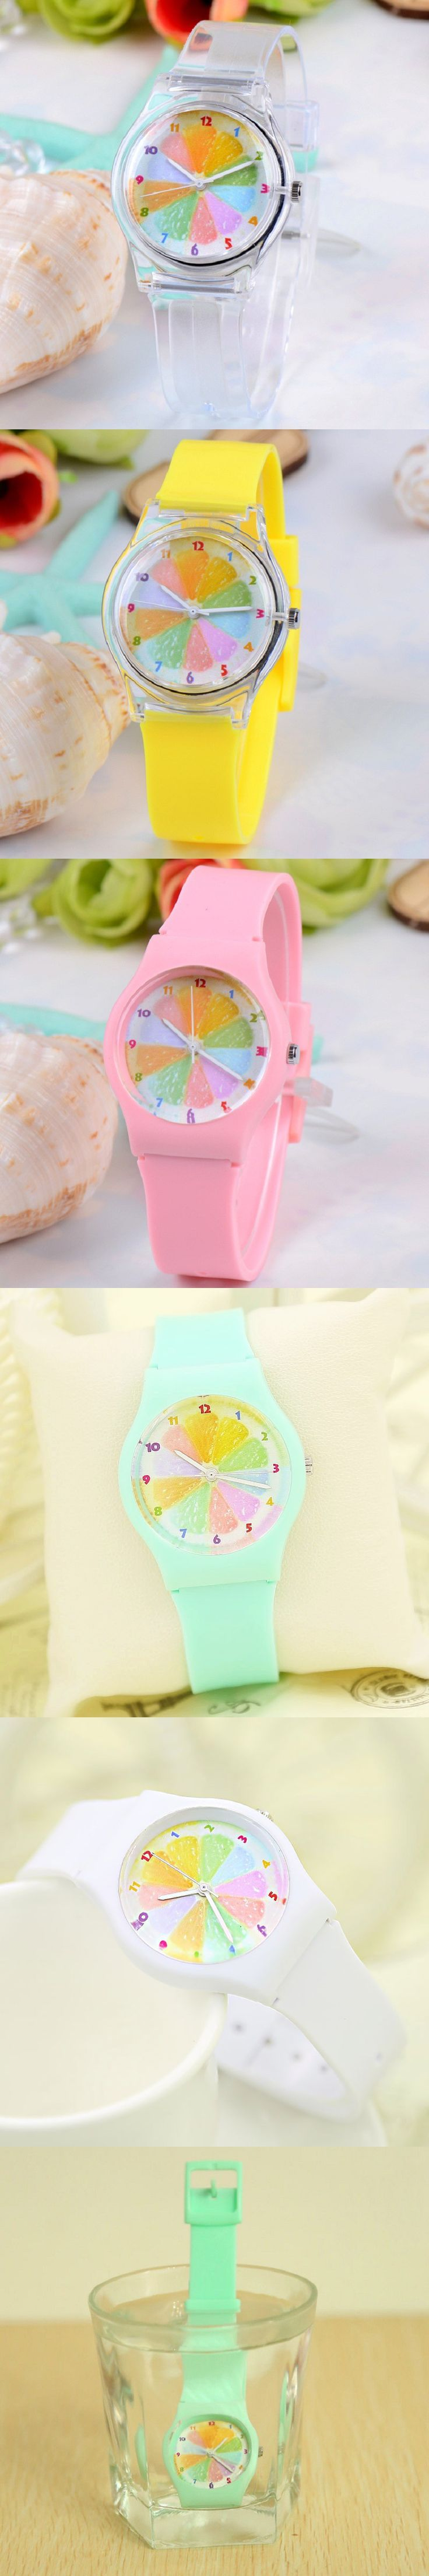 Newly Design Kids Watches Silicone Boys Watches Water Resistant Sports Fashion Casual Watches relojes hombre 2016 $15.88